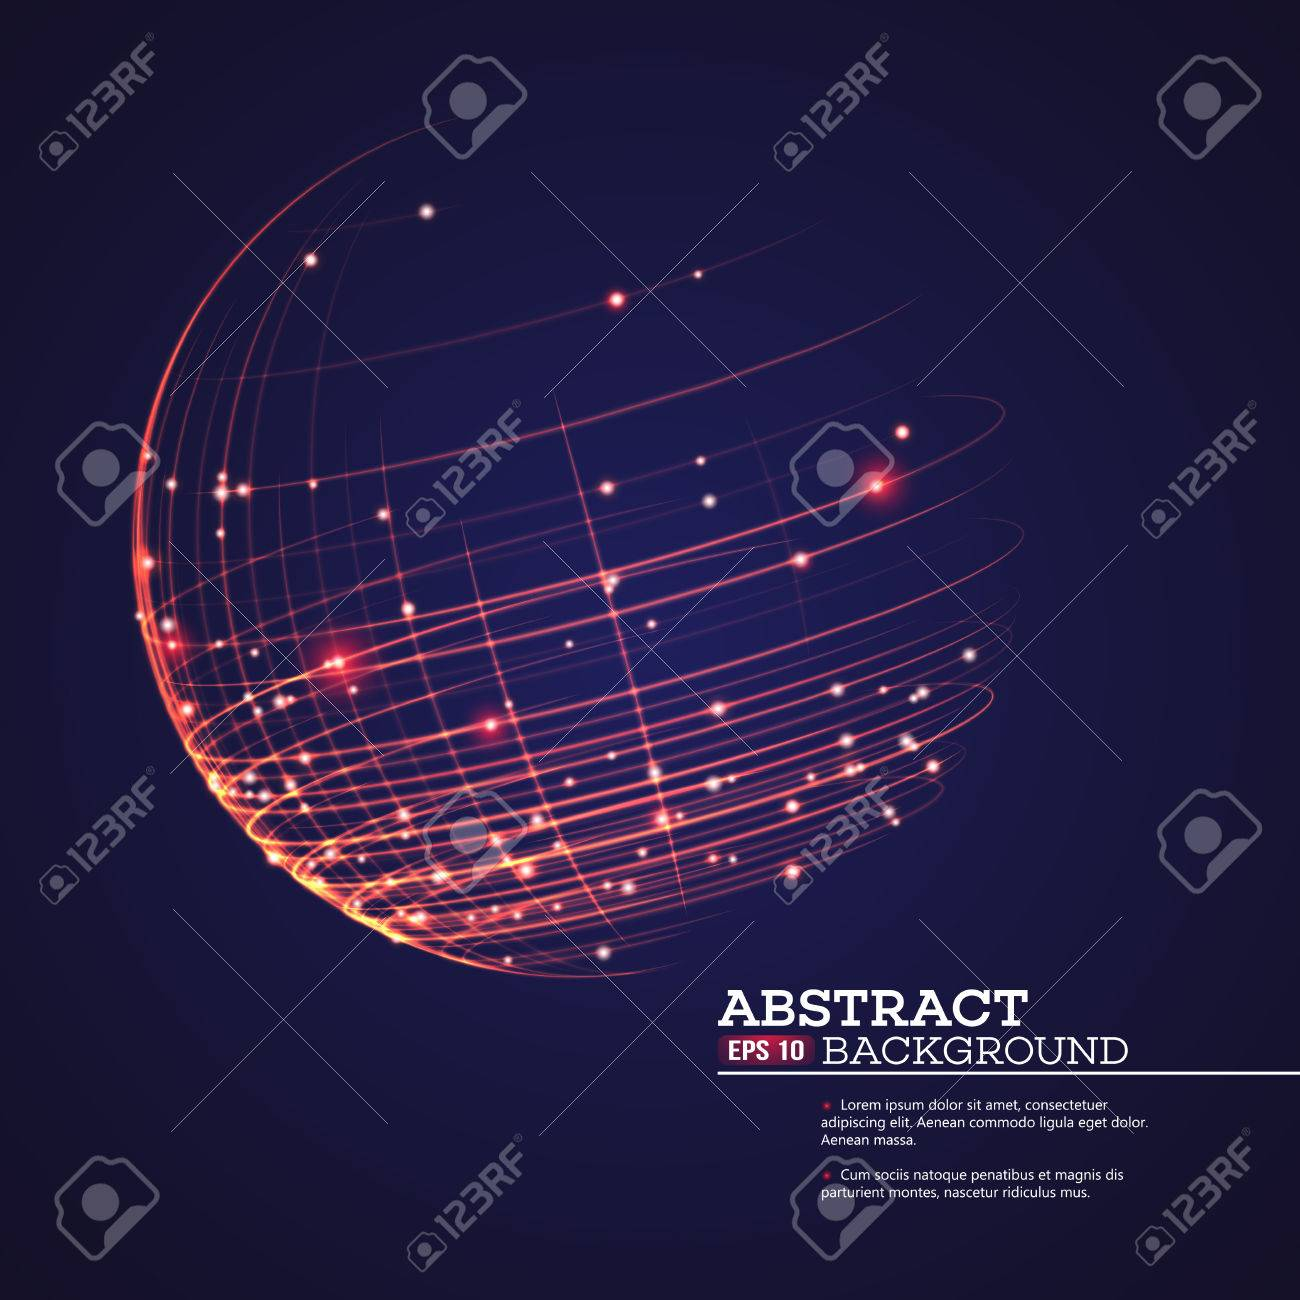 Point and curve constructed the sphere wireframe, technological sense abstract background. Vector illustration EPS10 - 52434450